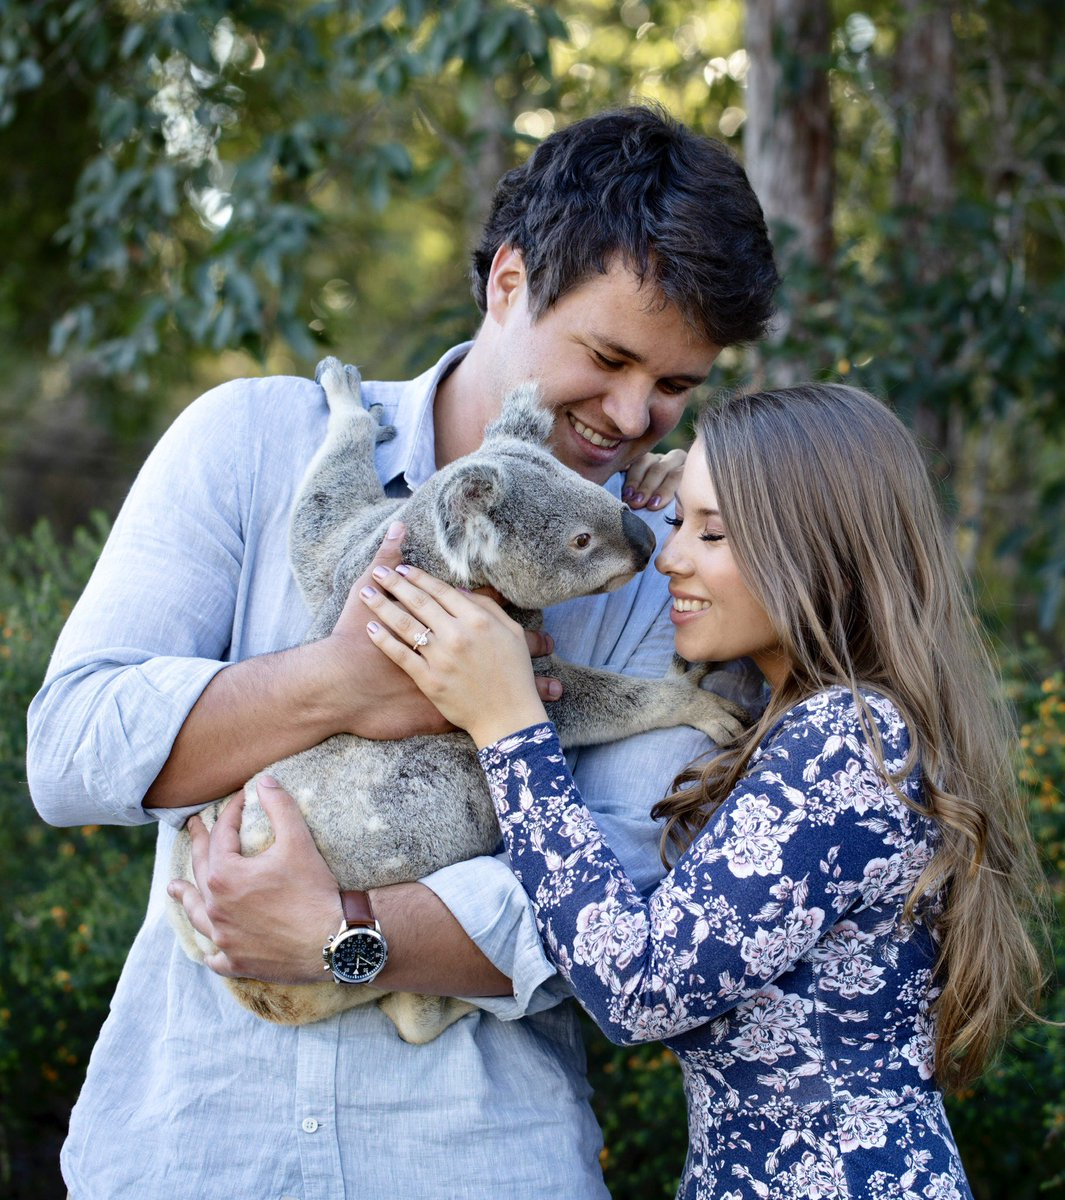 Australia Zoo On Twitter They Re Engaged Crikey Chandler Proposed On Beautiful Bindi S Birthday Right Here At Australiazoo Such A Wonderful Time For Our Entire Australia Zoo Family We Love Them Both So